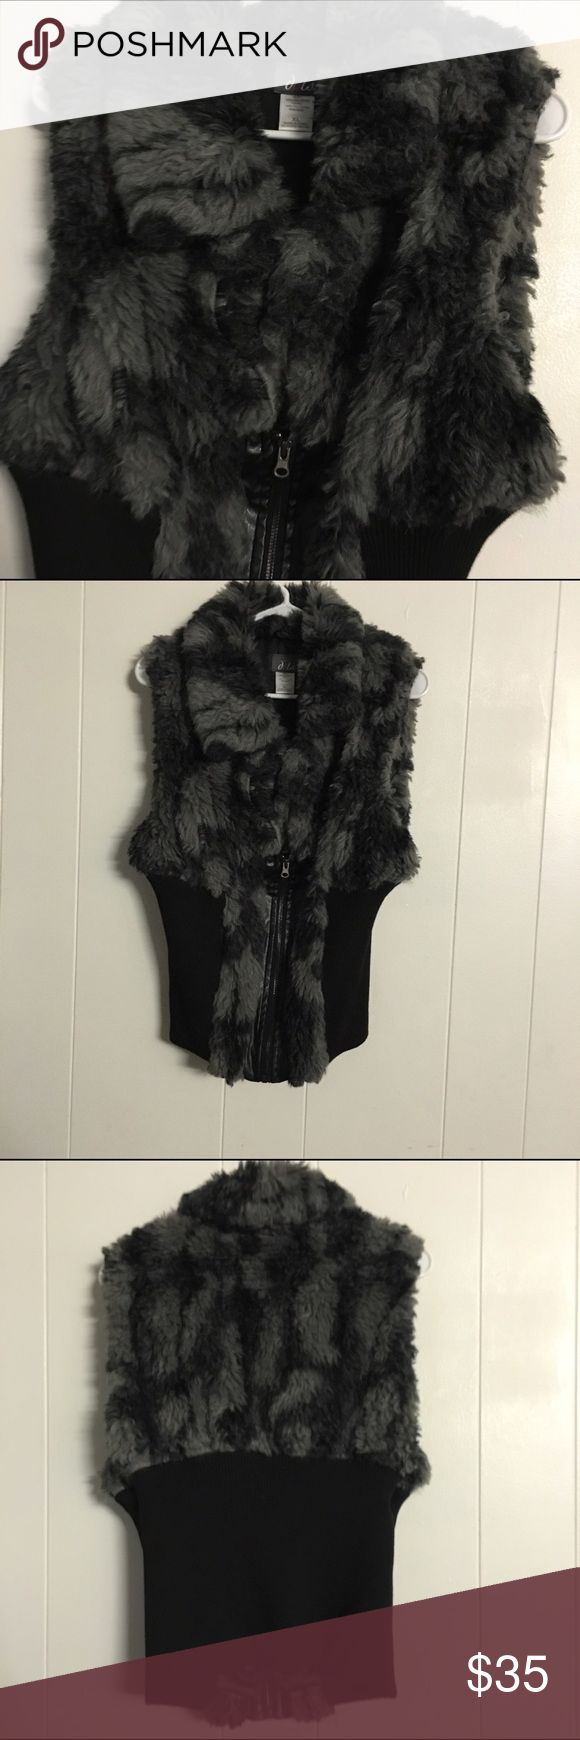 Women's fur jacket size XL good looking . Women's fur jacket Size XL good looking and good condition if u have any questions please ask me feel free please see my other listing items also pet free smoke free home . Dots Jackets & Coats Vests